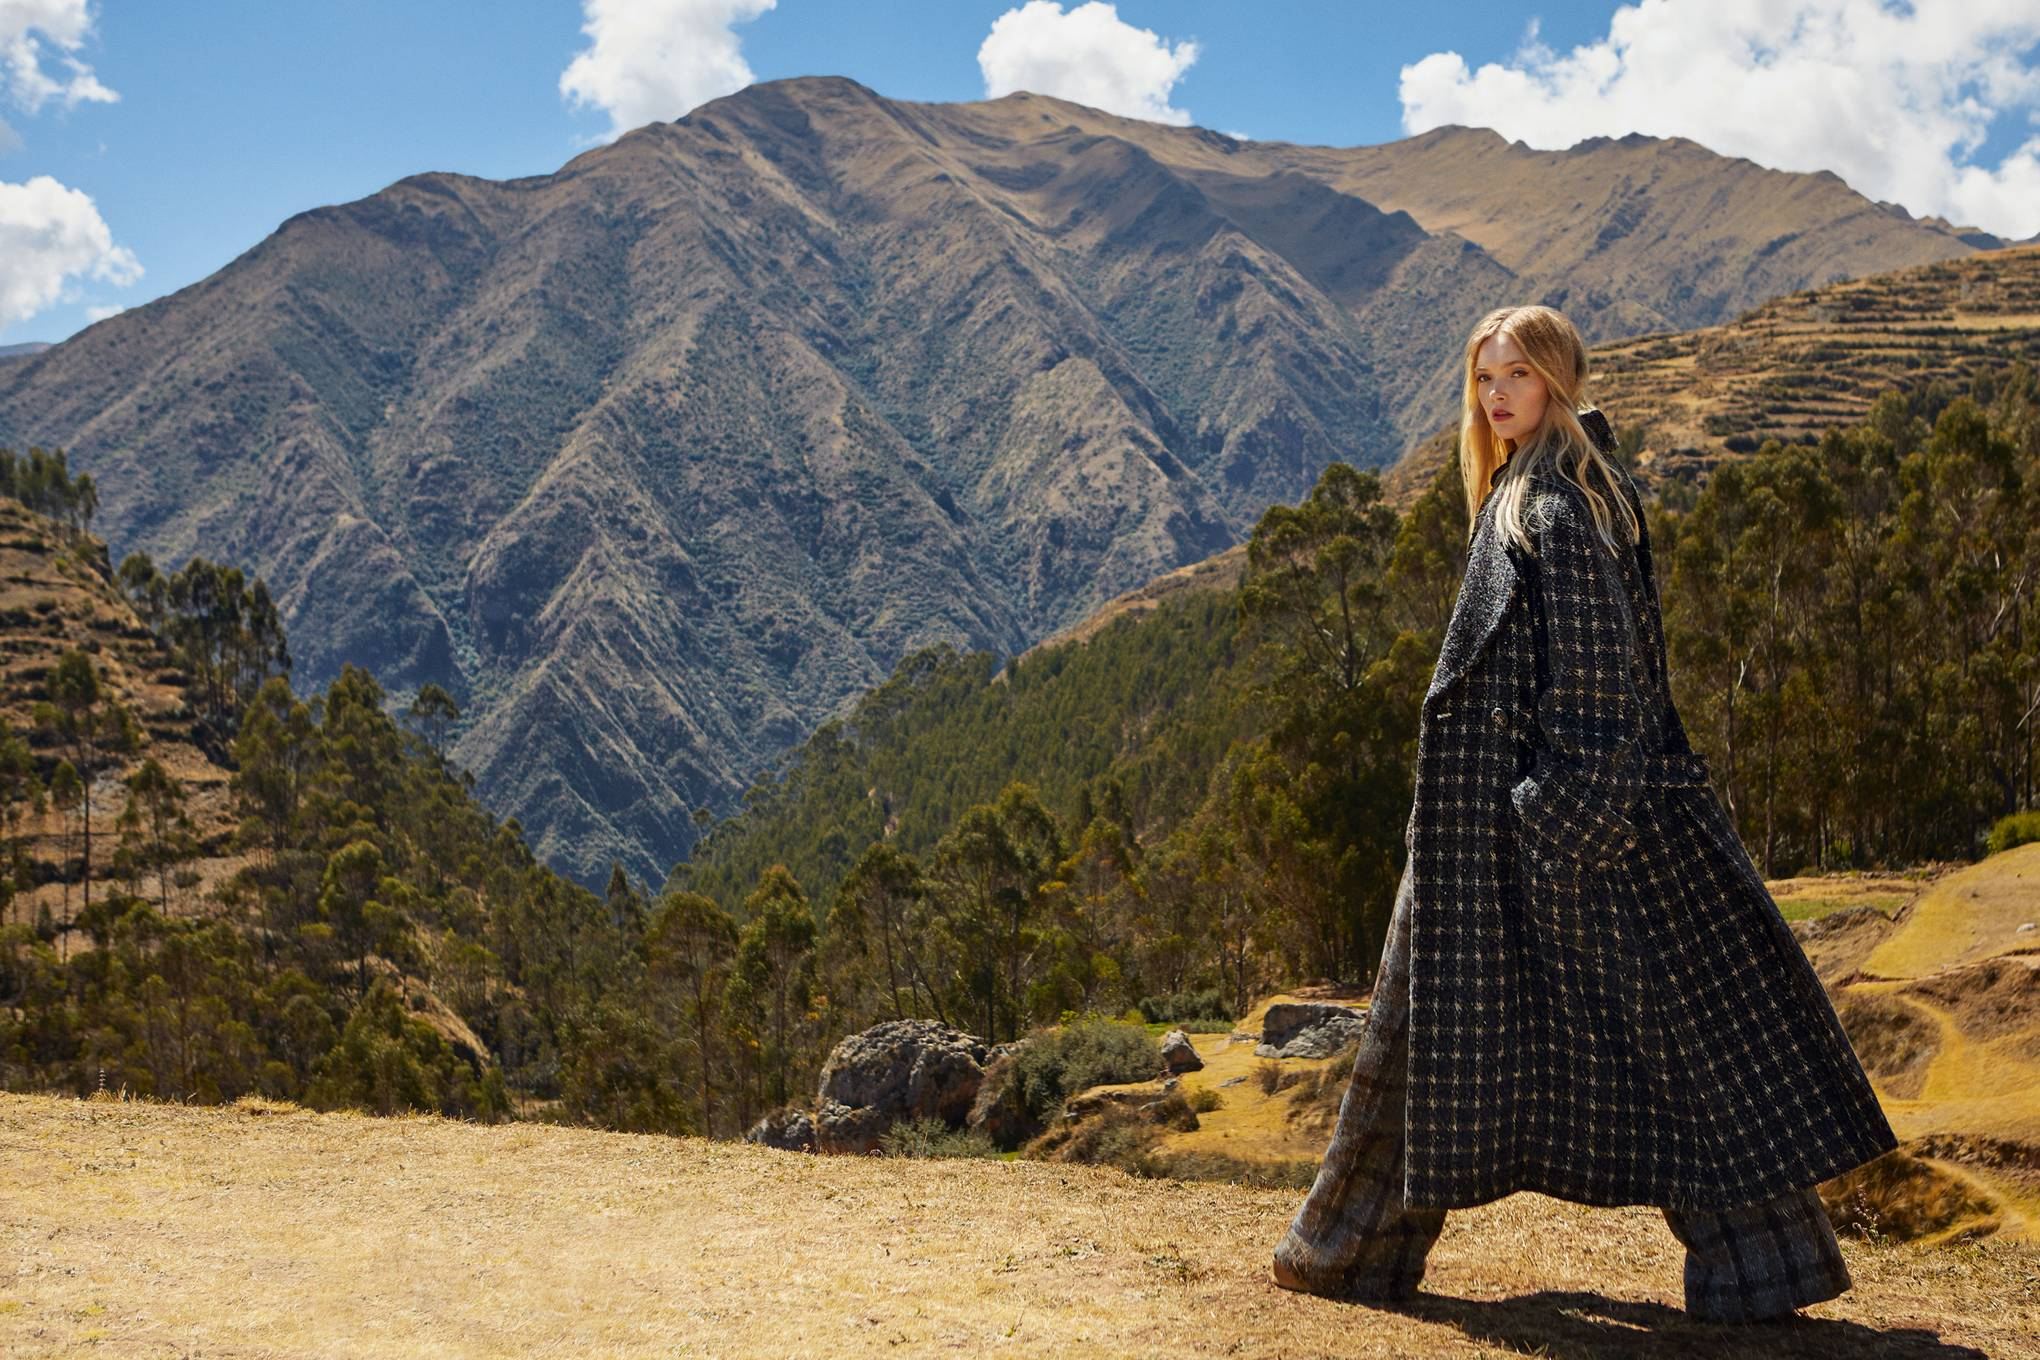 Fashion in the Peruvian Andes